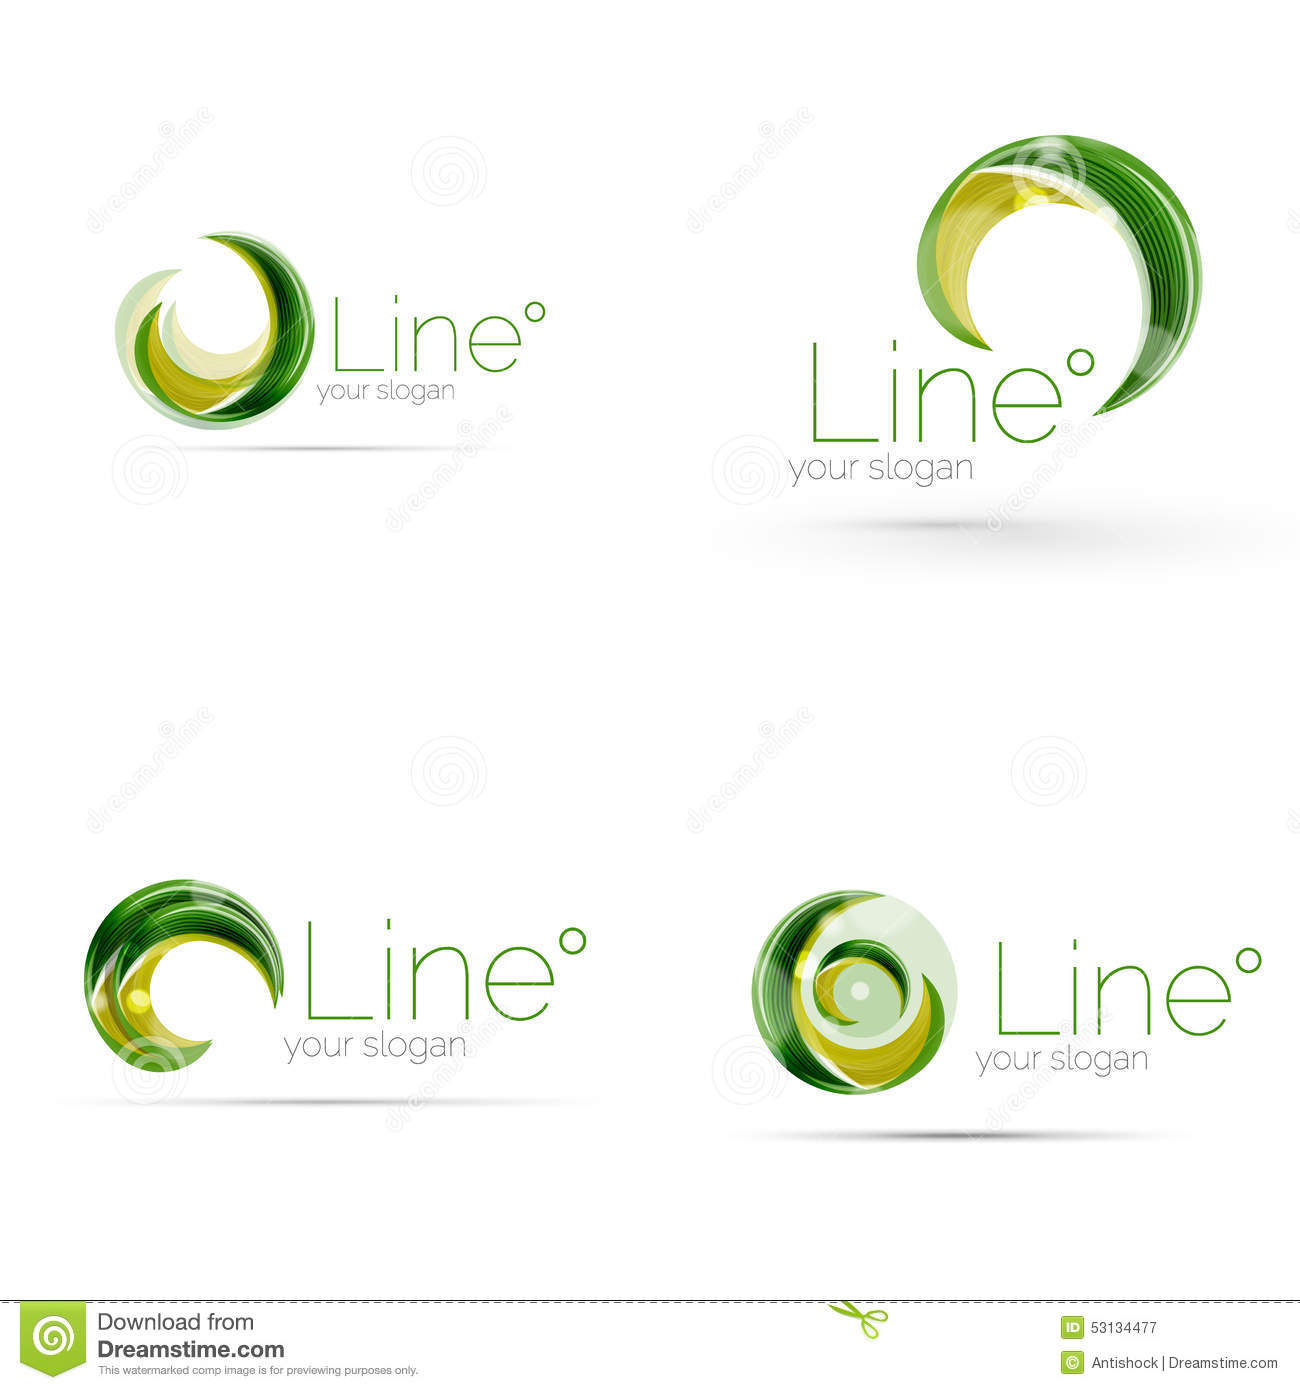 Company Logo Design Universal For All Ideas And Concepts Business